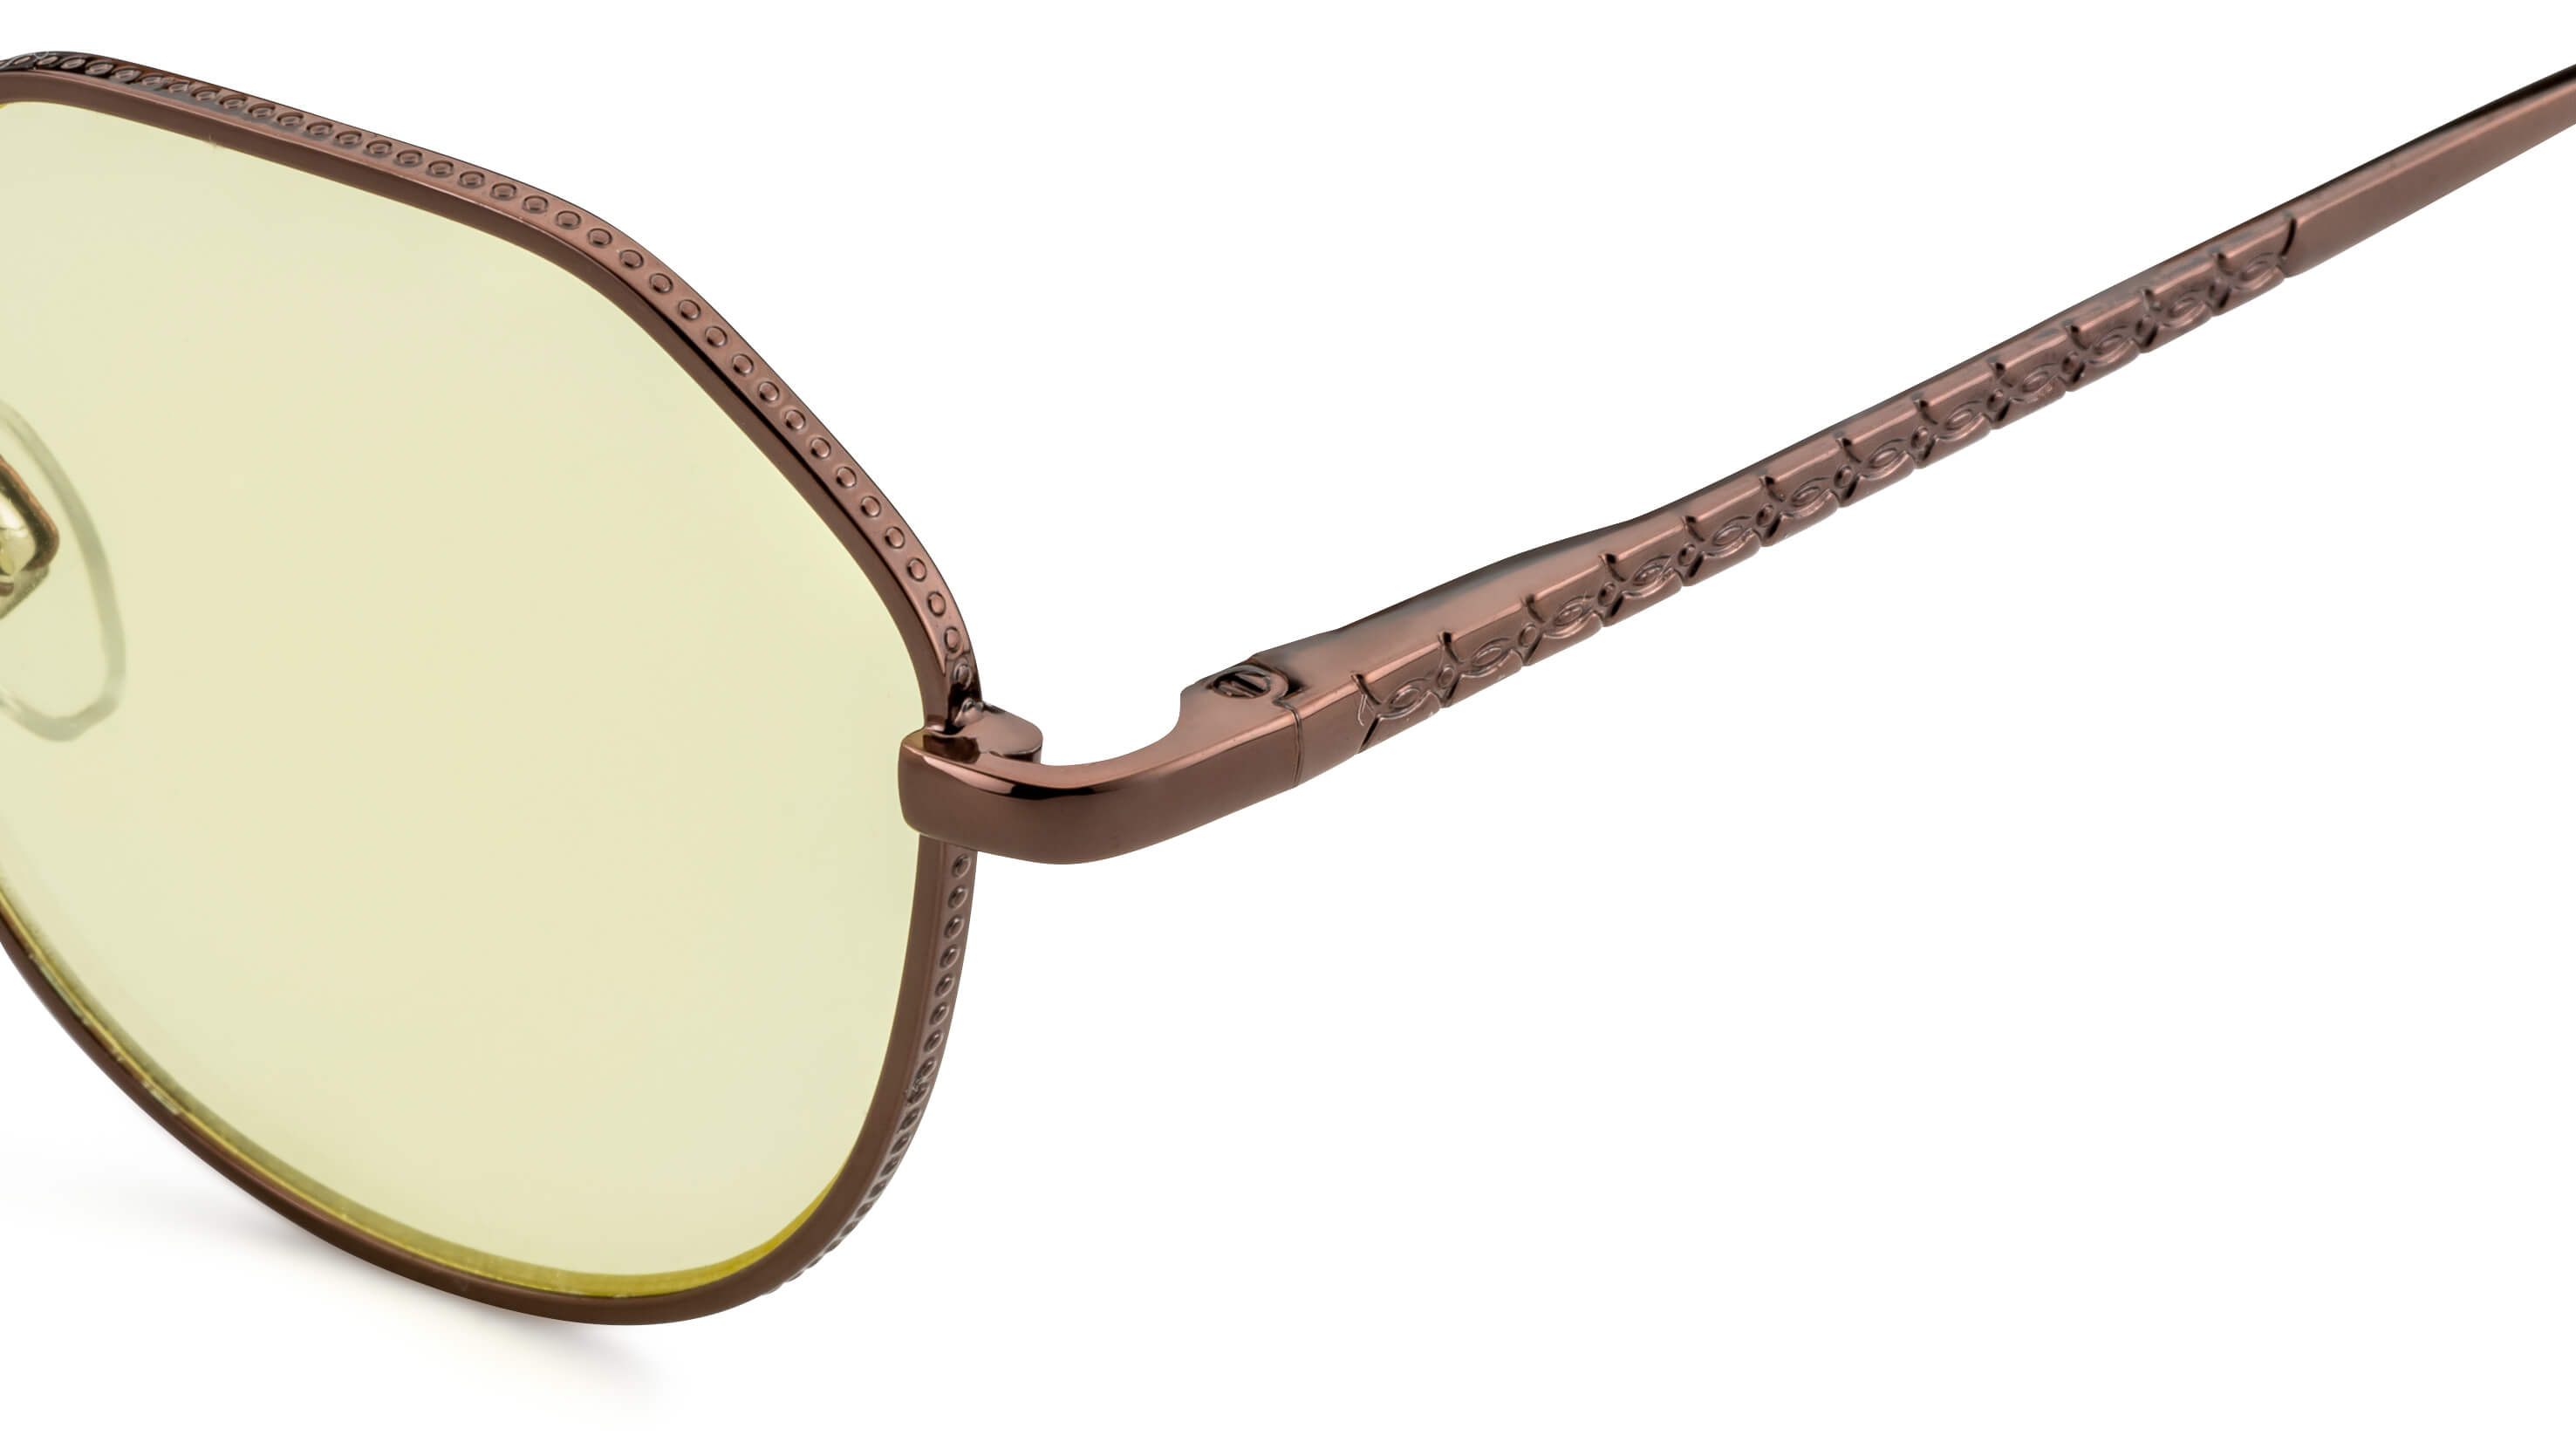 Detailed view sunglasses F3001040